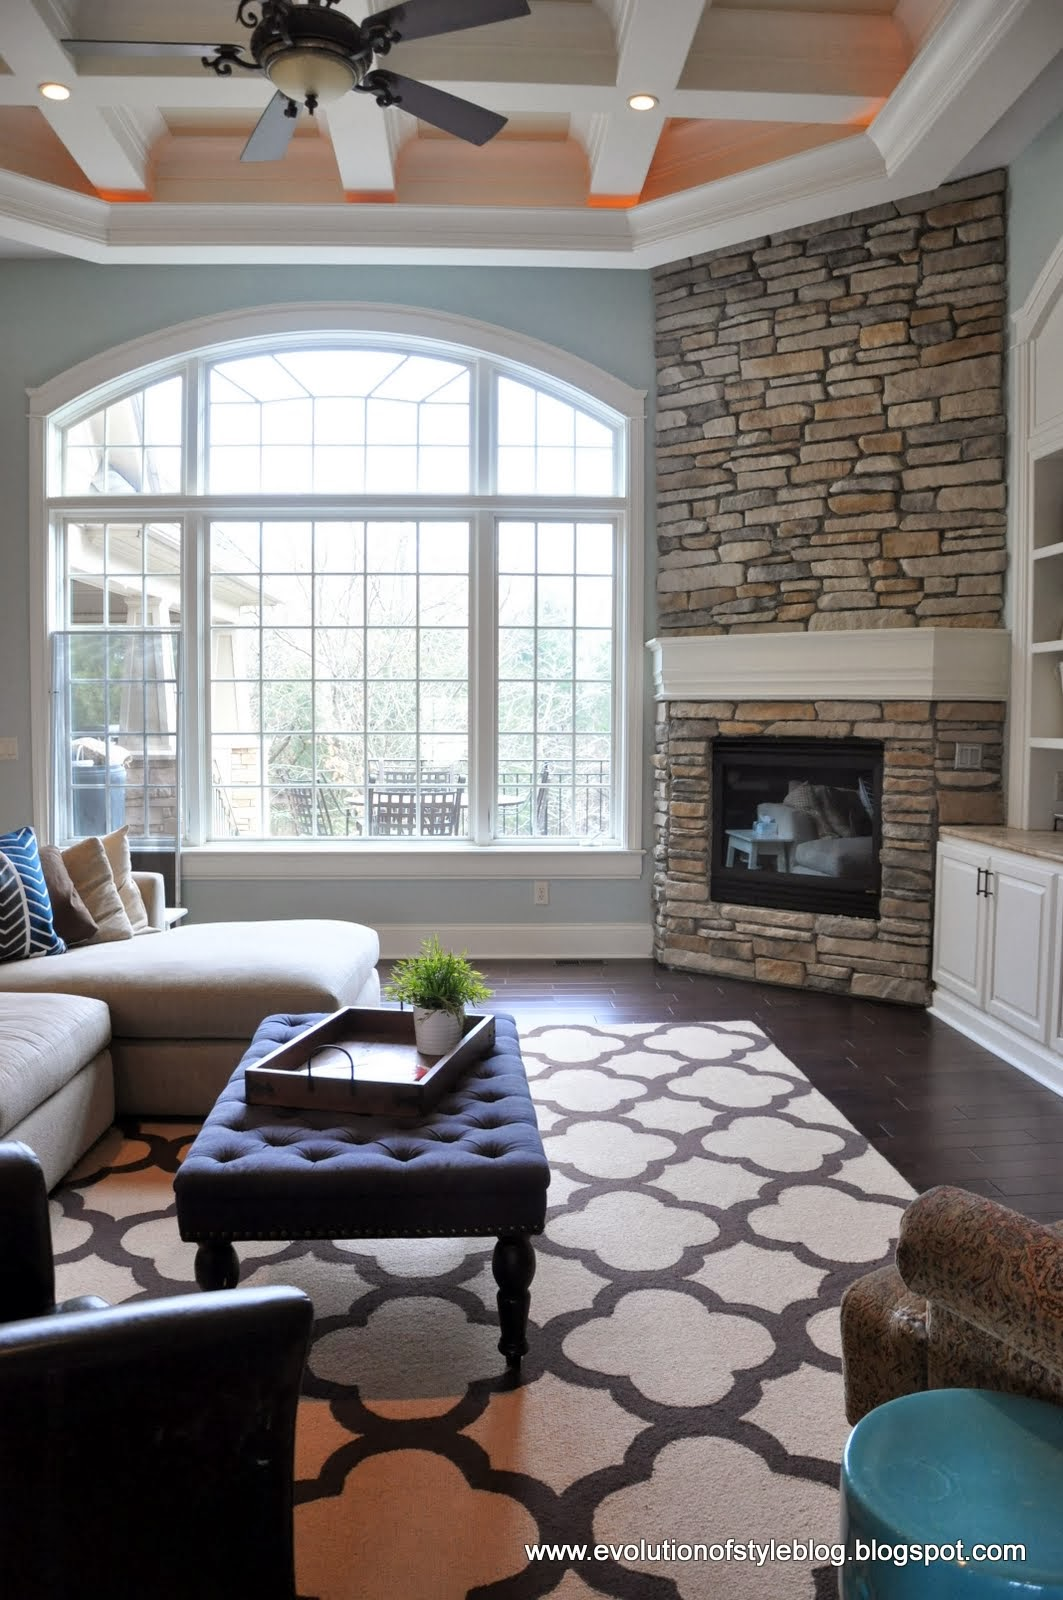 Diy stone fireplace reveal for real evolution of style - Living room with fireplace ...